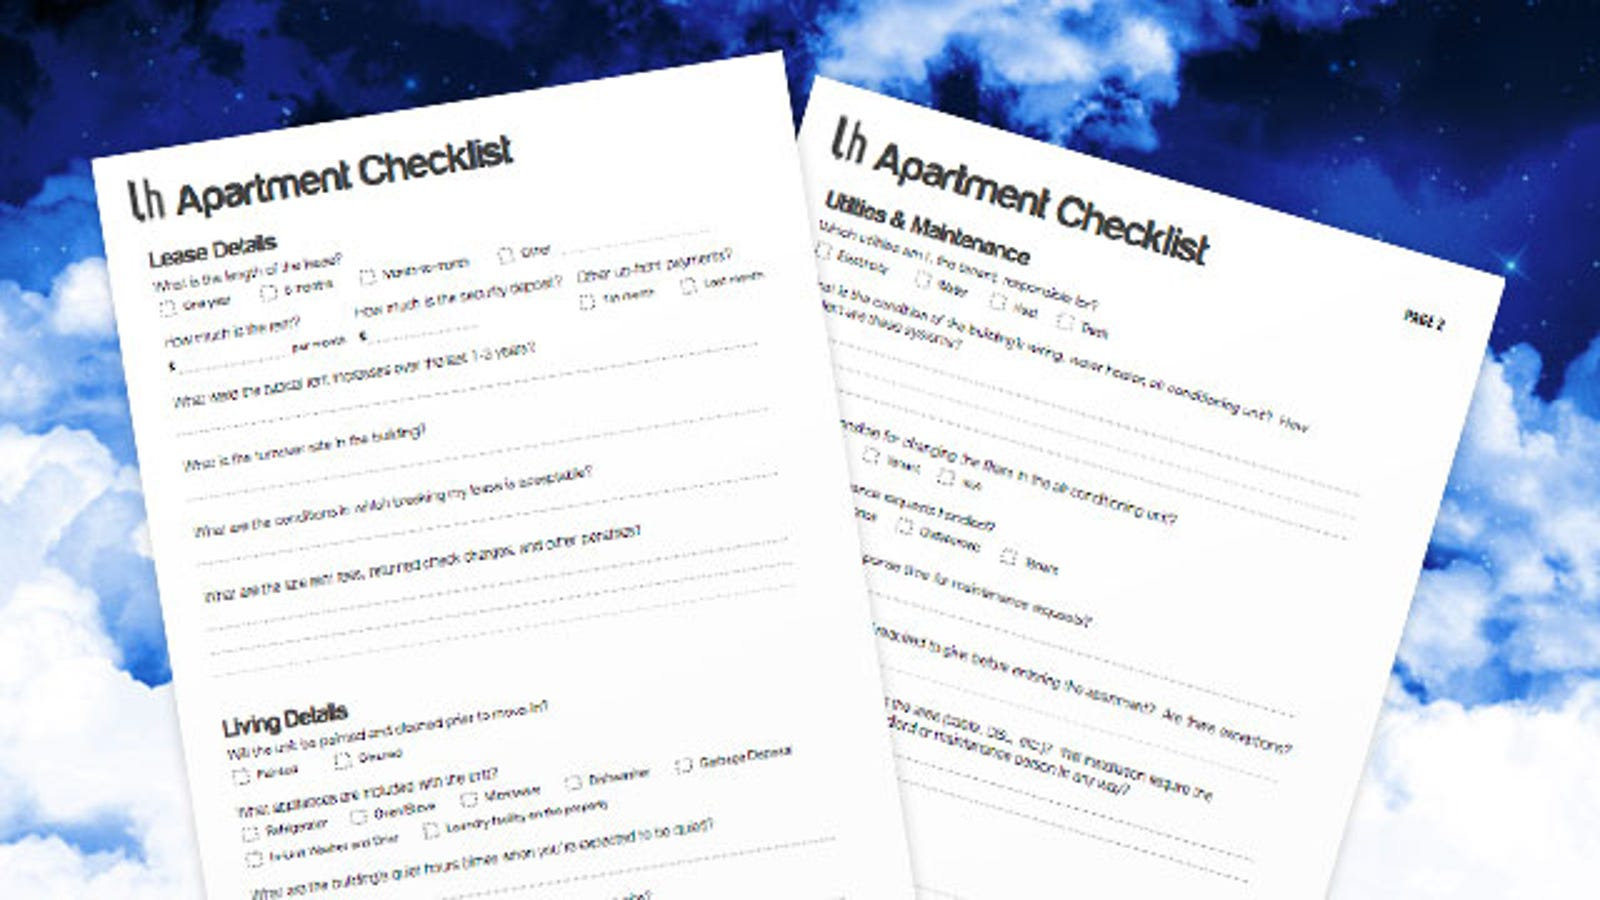 bring this checklist with you next time you re apartment hunting